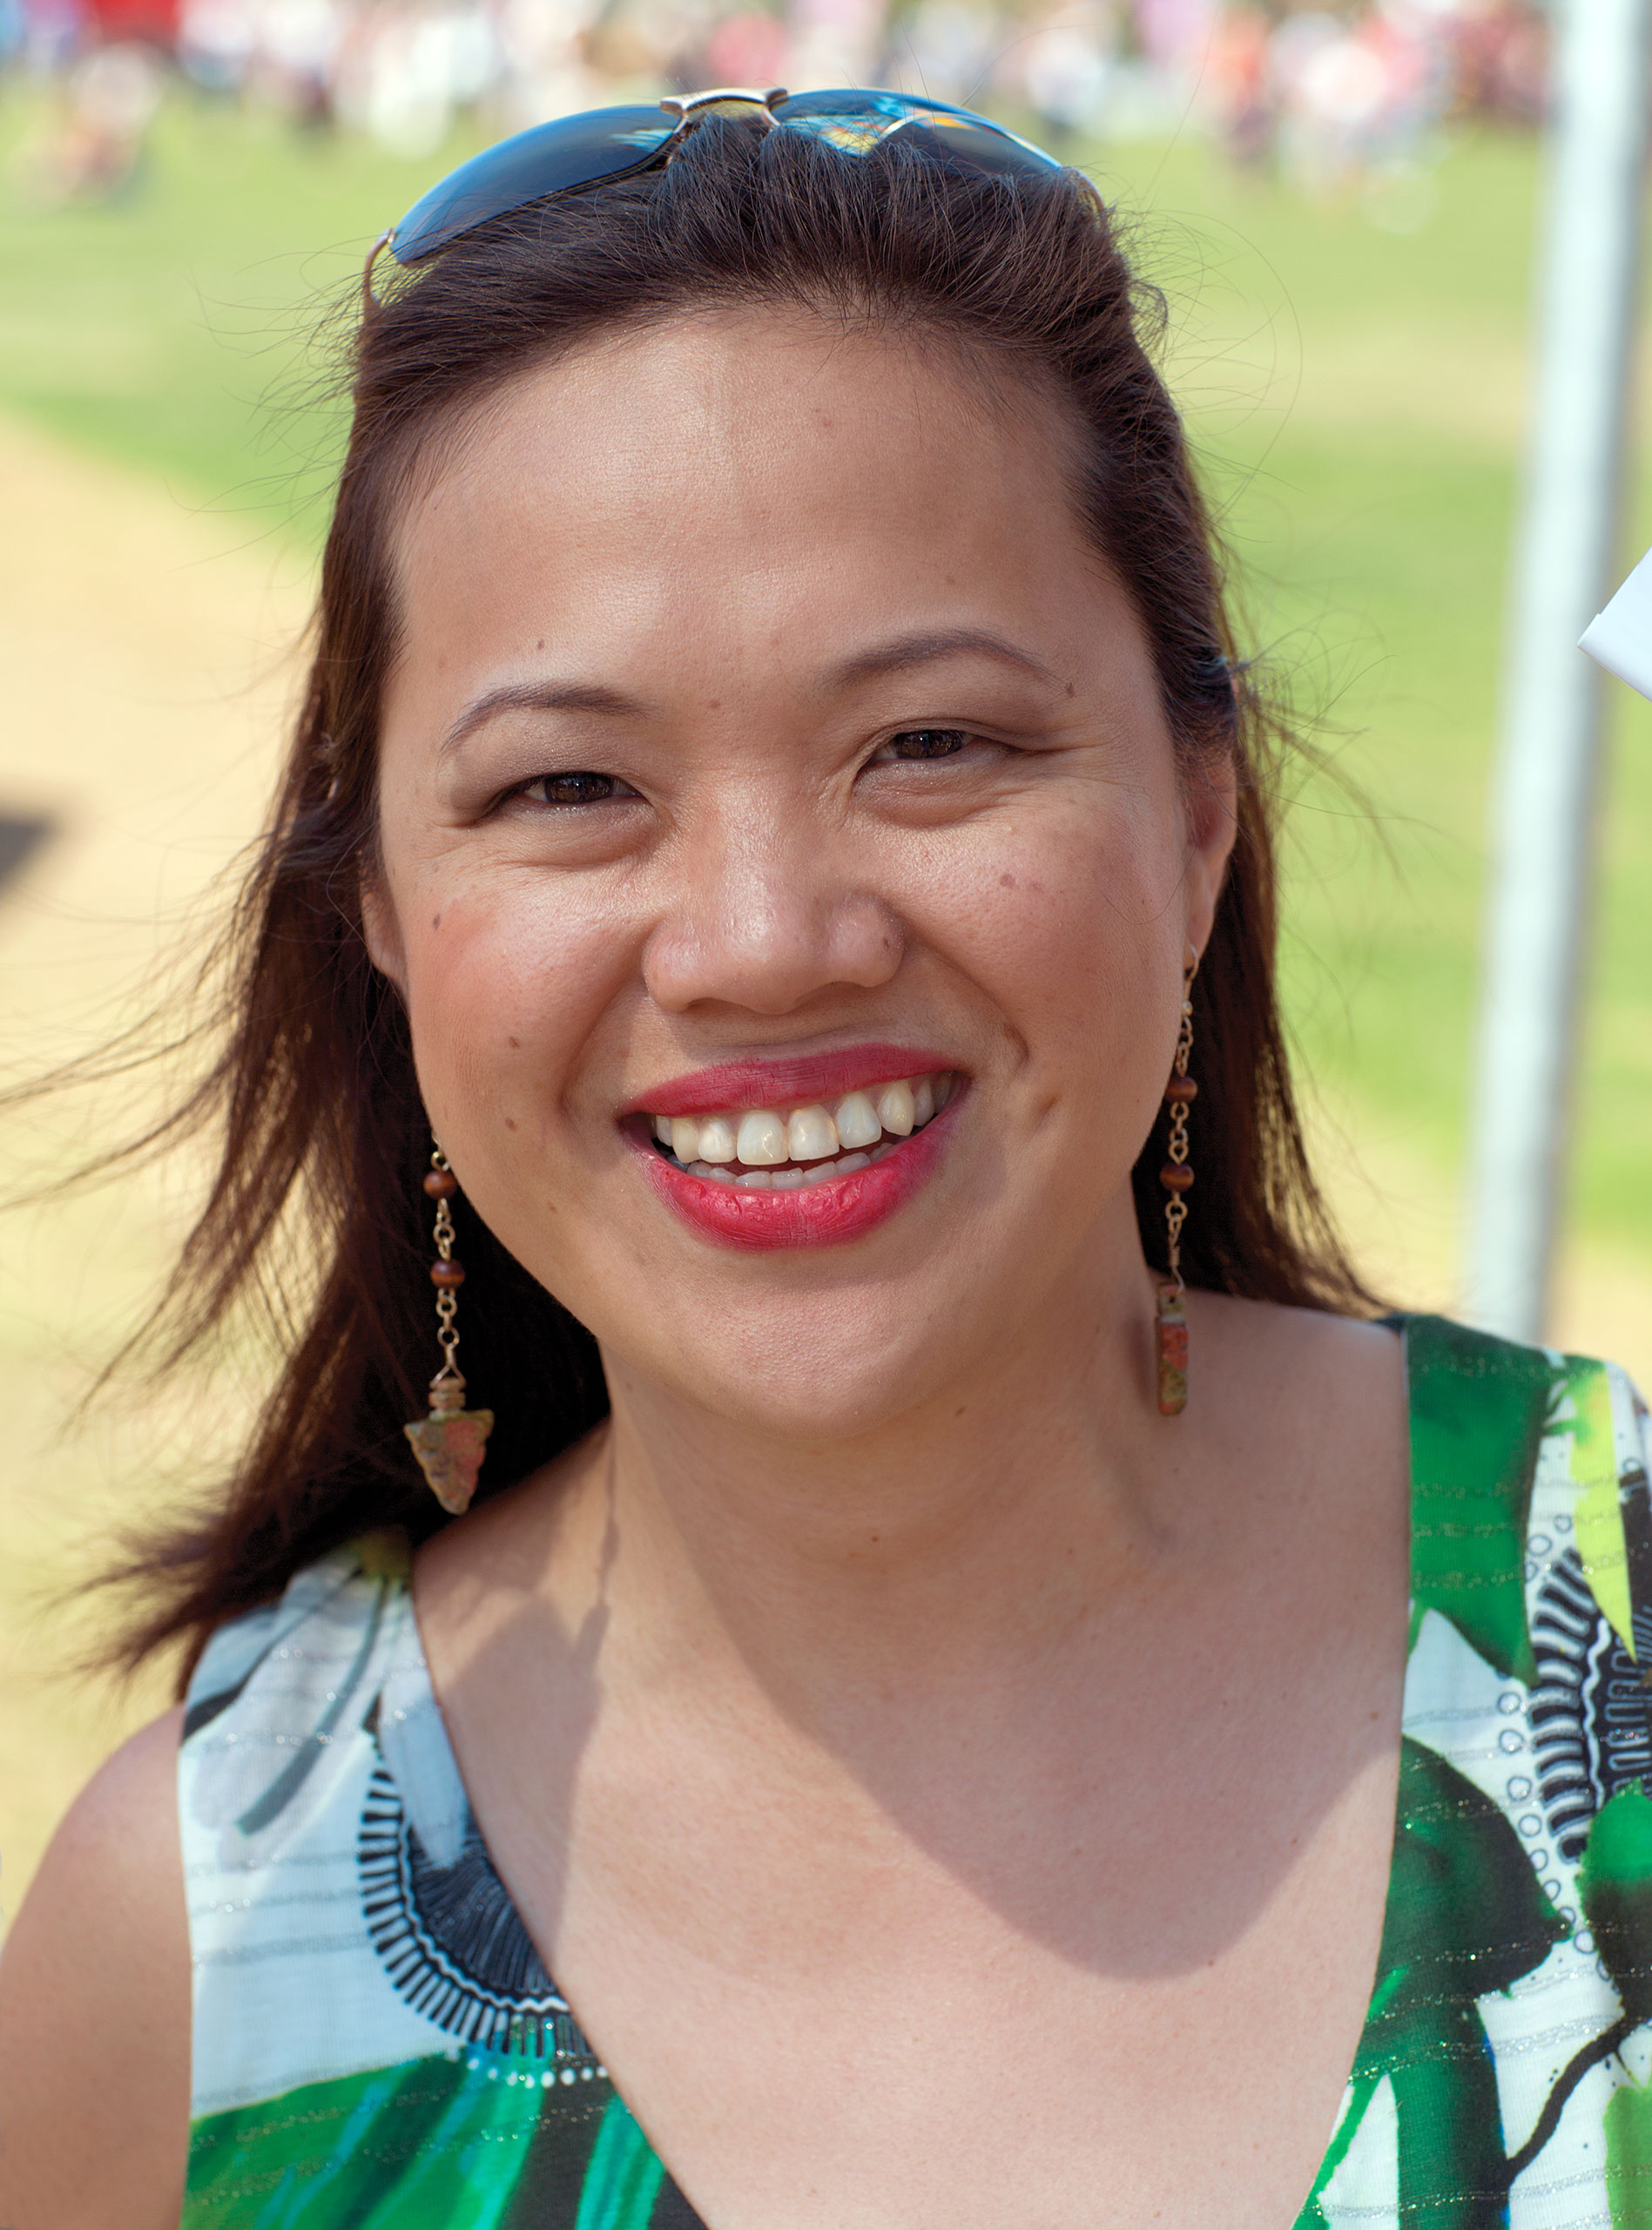 Evelyn from the Philipines